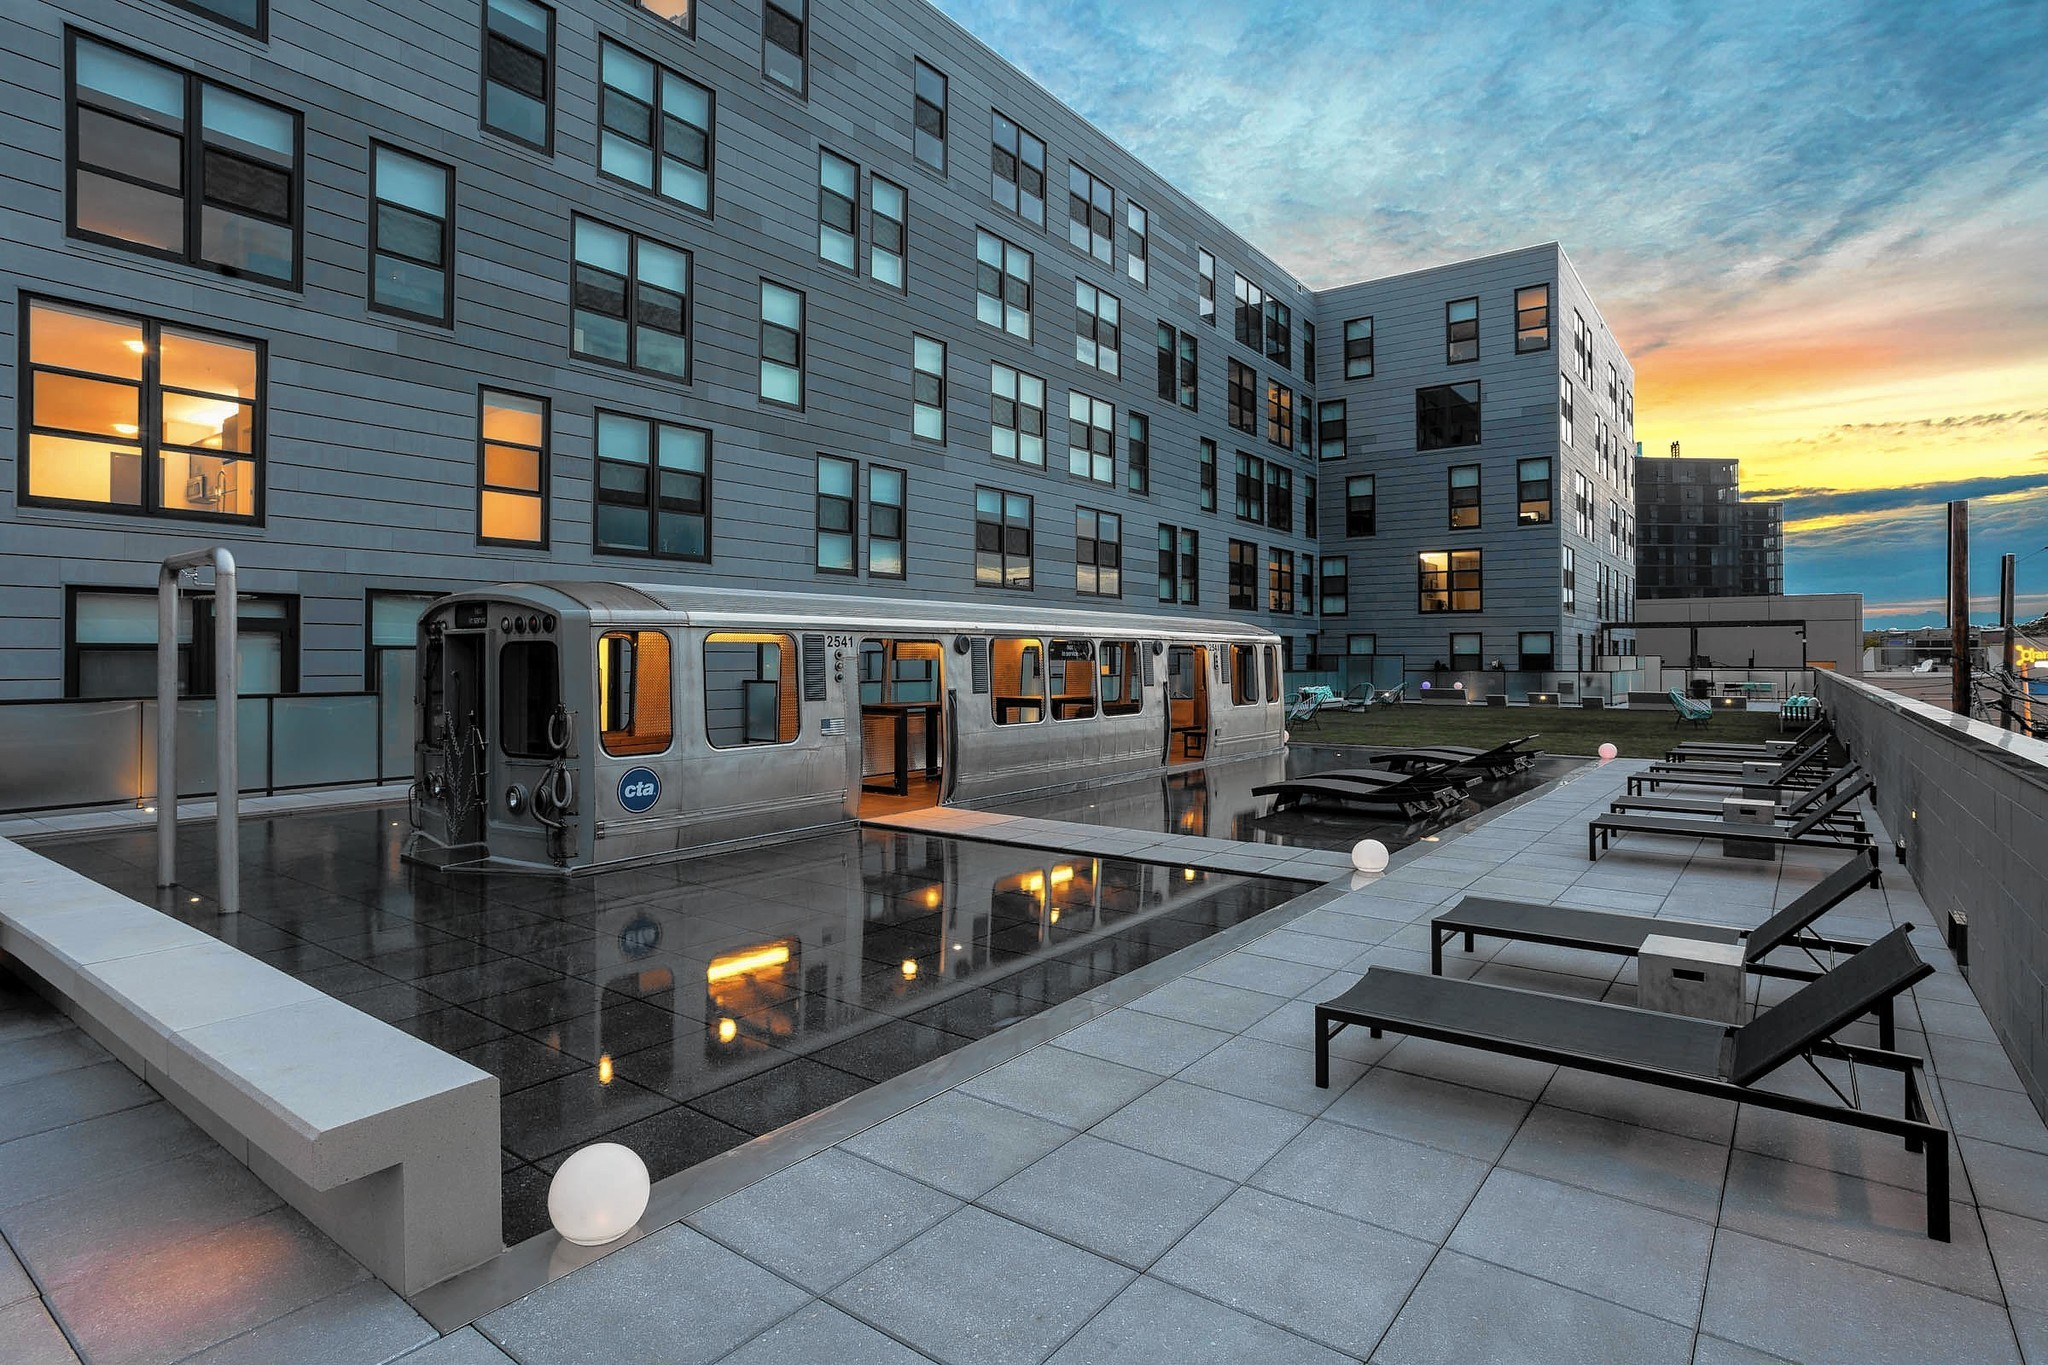 Transit-oriented housing in Chicago is back on track